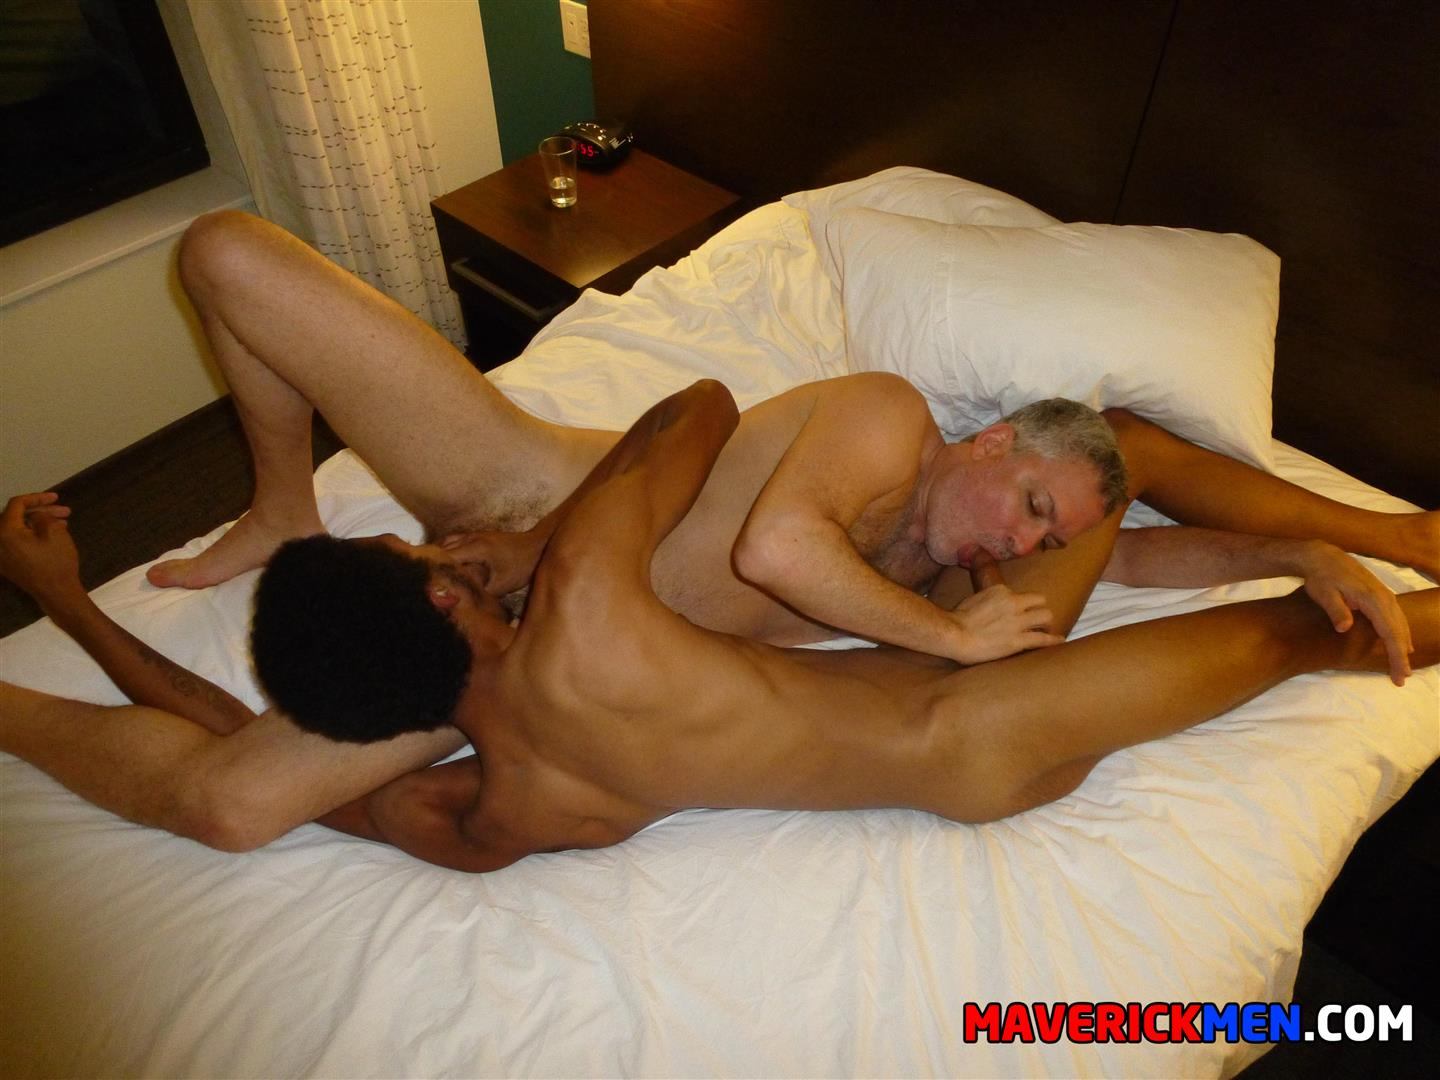 Maverick-Men-Richie-Black-Twink-Takes-Two-Muscle-Daddy-Cocks-Bareback-Amateur-Gay-Porn-23 Black Top Twink Takes Two Raw Muscle Daddy Cocks Up The Ass